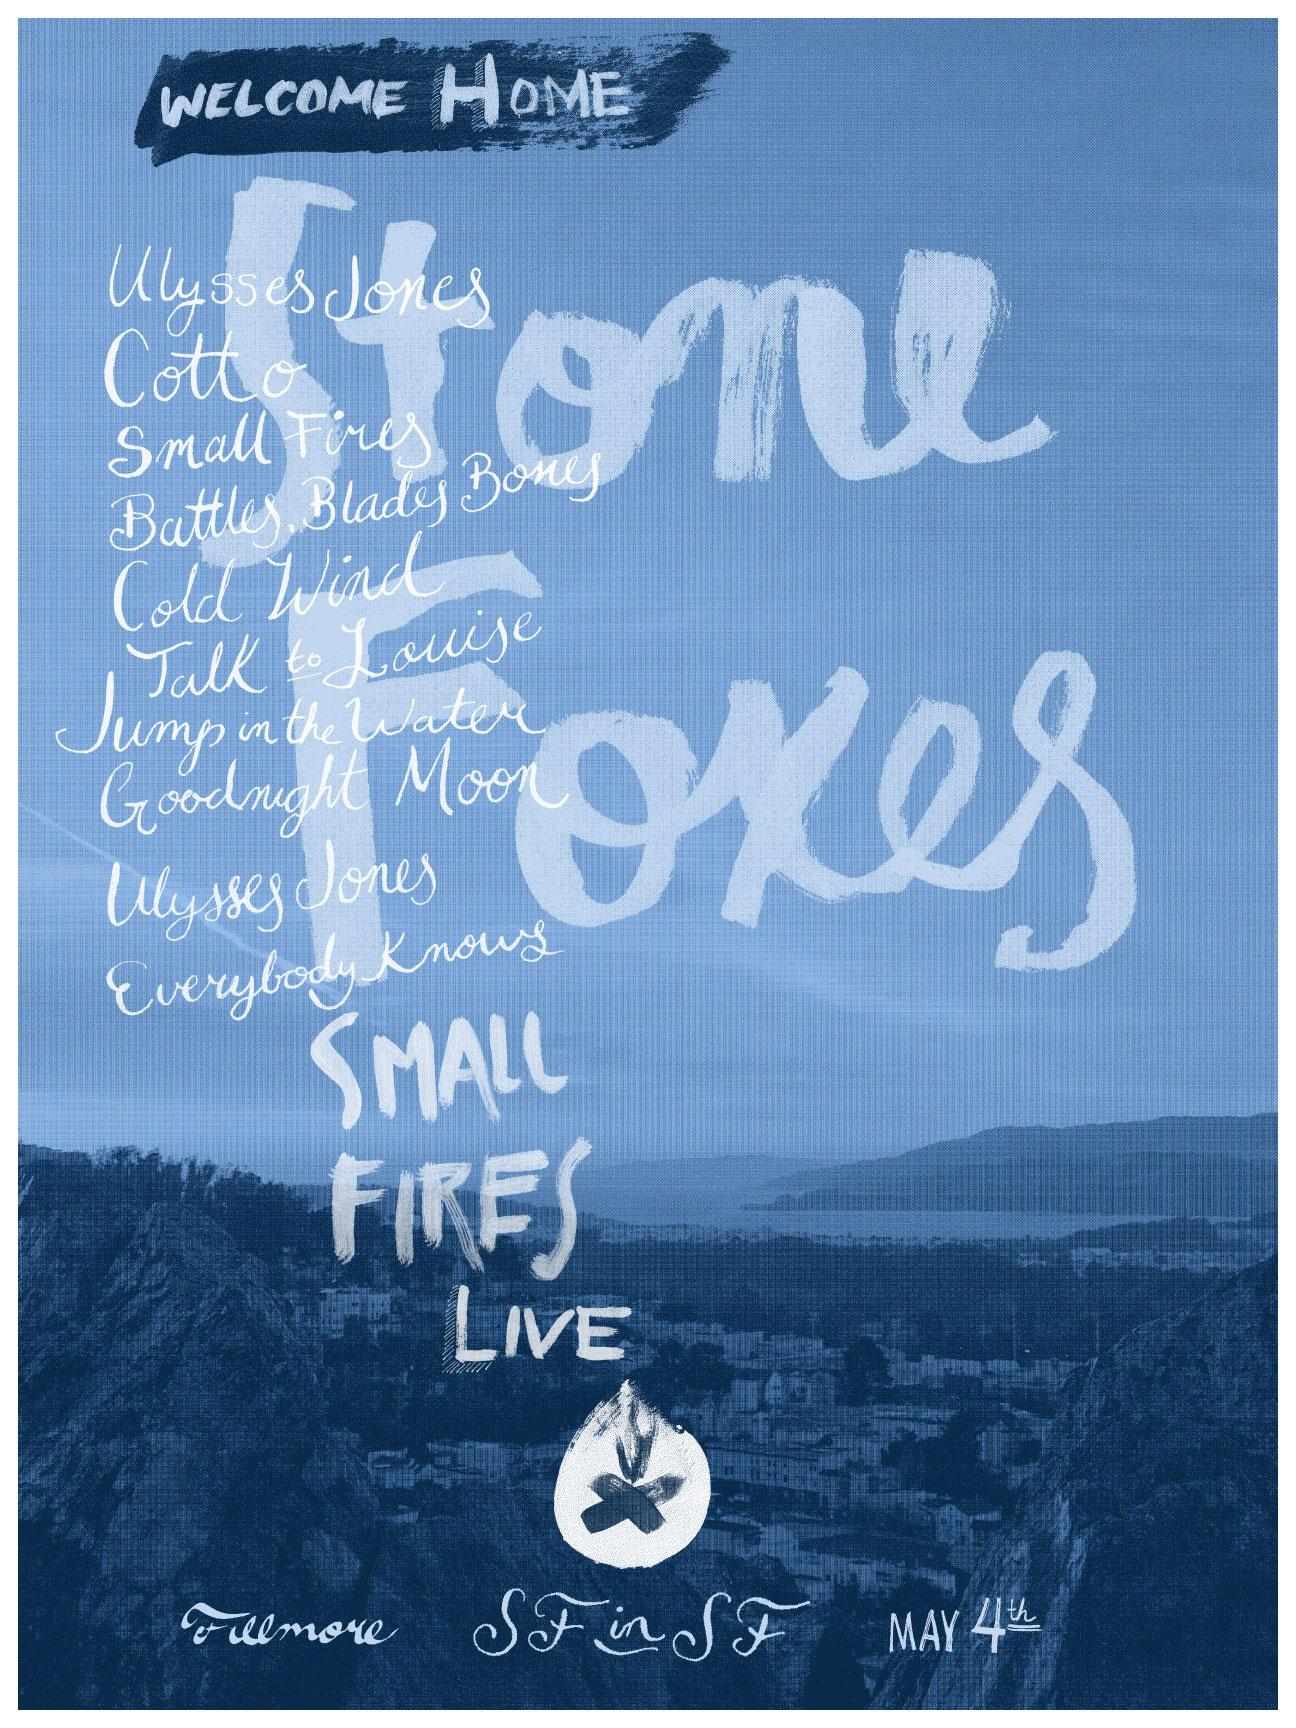 The Stone Foxes - A Homecoming Poster - image 2 - student project